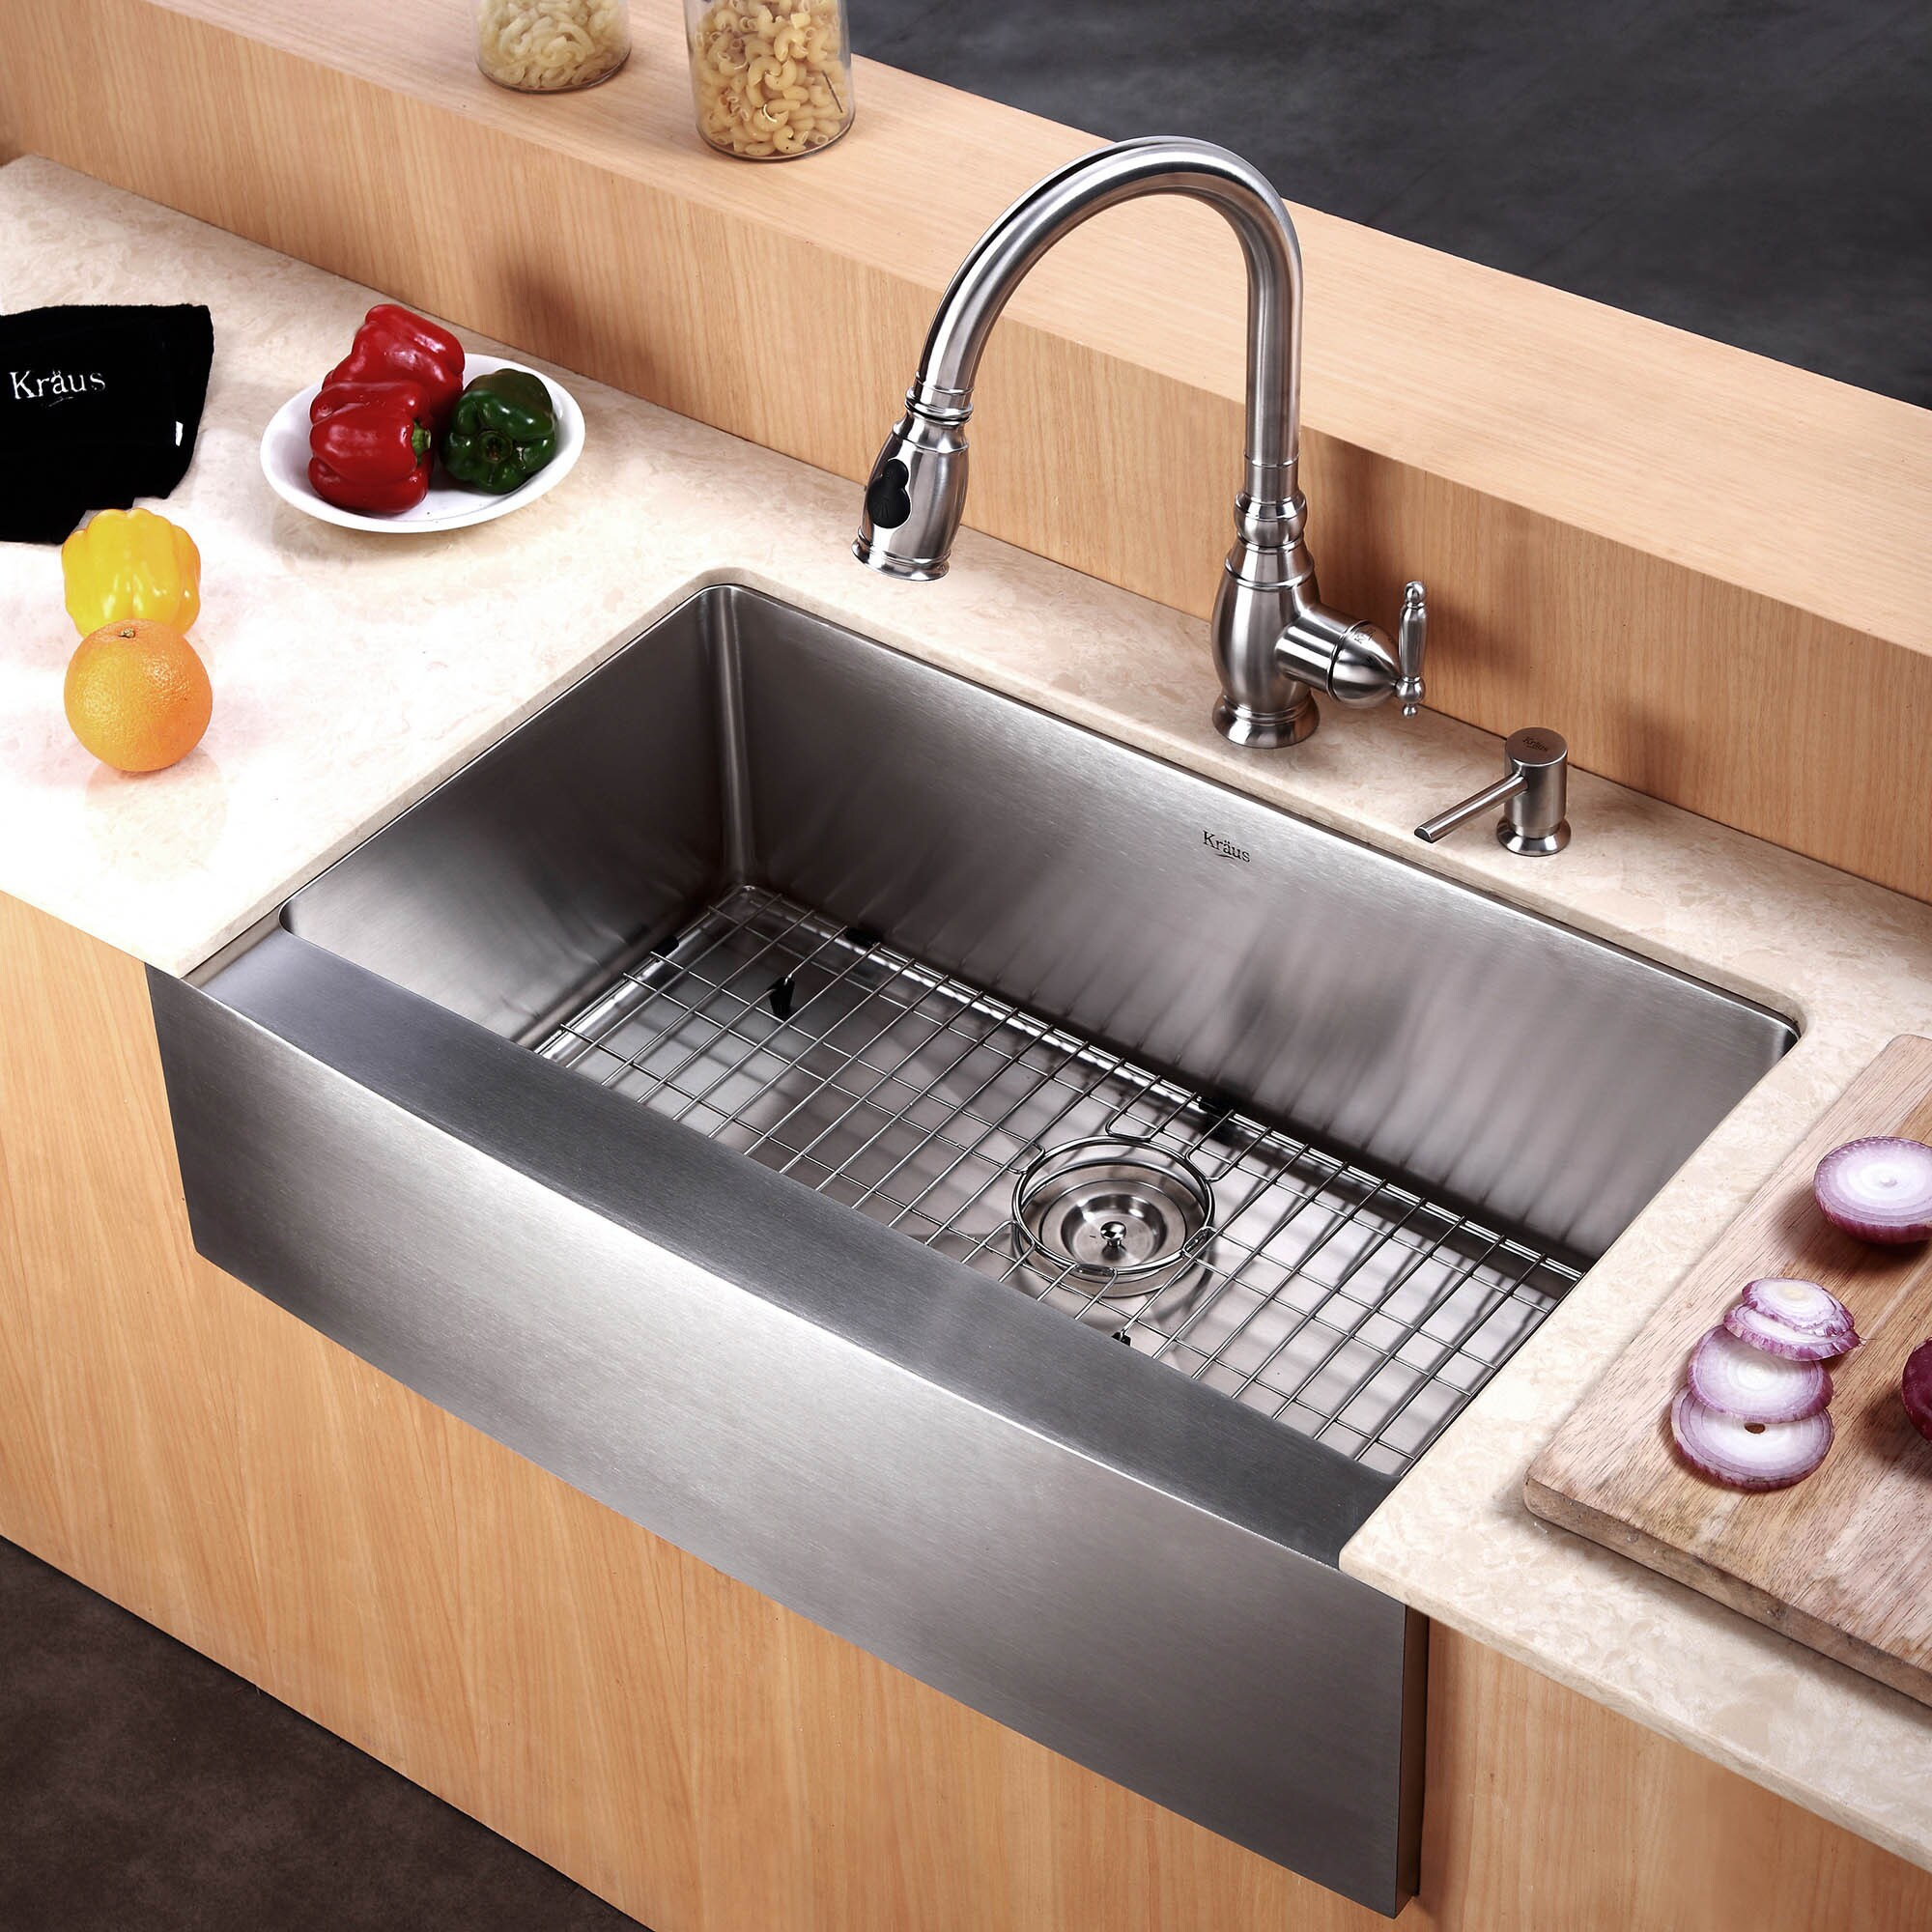 Kraus Khf200 30 Farmhouse A Front In 16g 1 Bowl Satin Stainless Steel Kitchen Sink Grid Strainer Towel Free Shipping Today